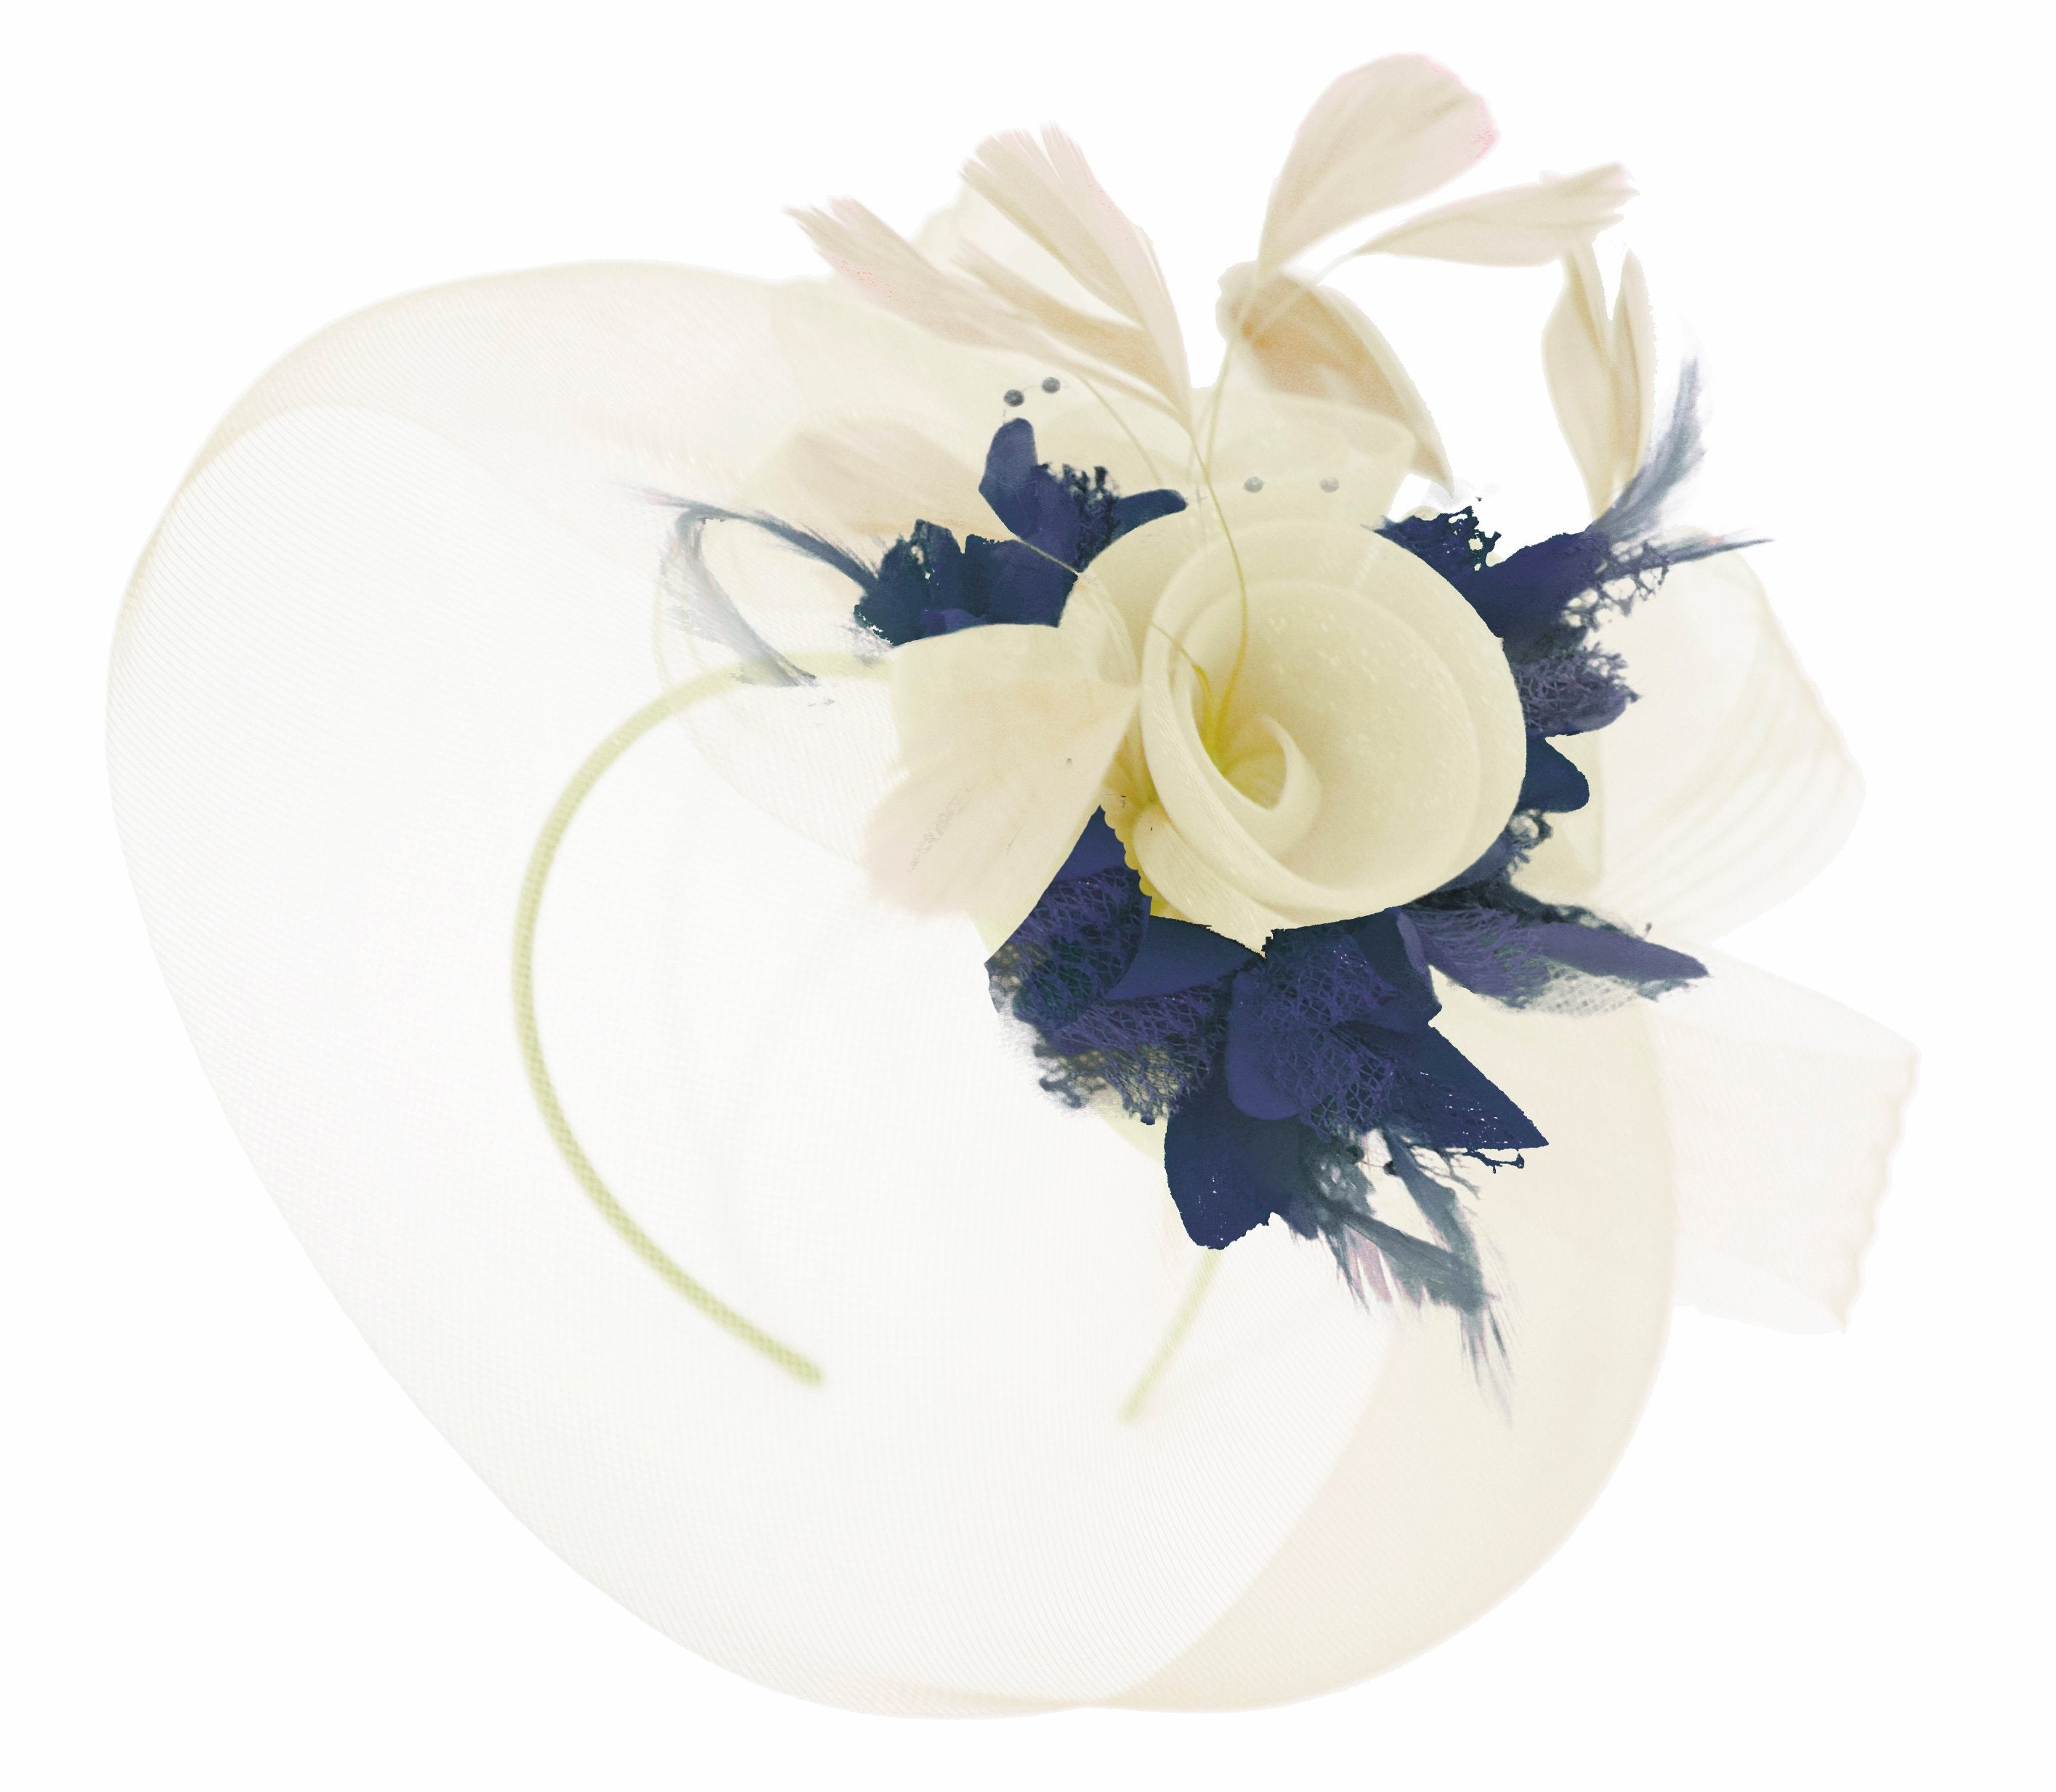 Caprilite Cream and Navy Fascinator on Headband Veil UK Wedding Ascot Races Hatinator Women